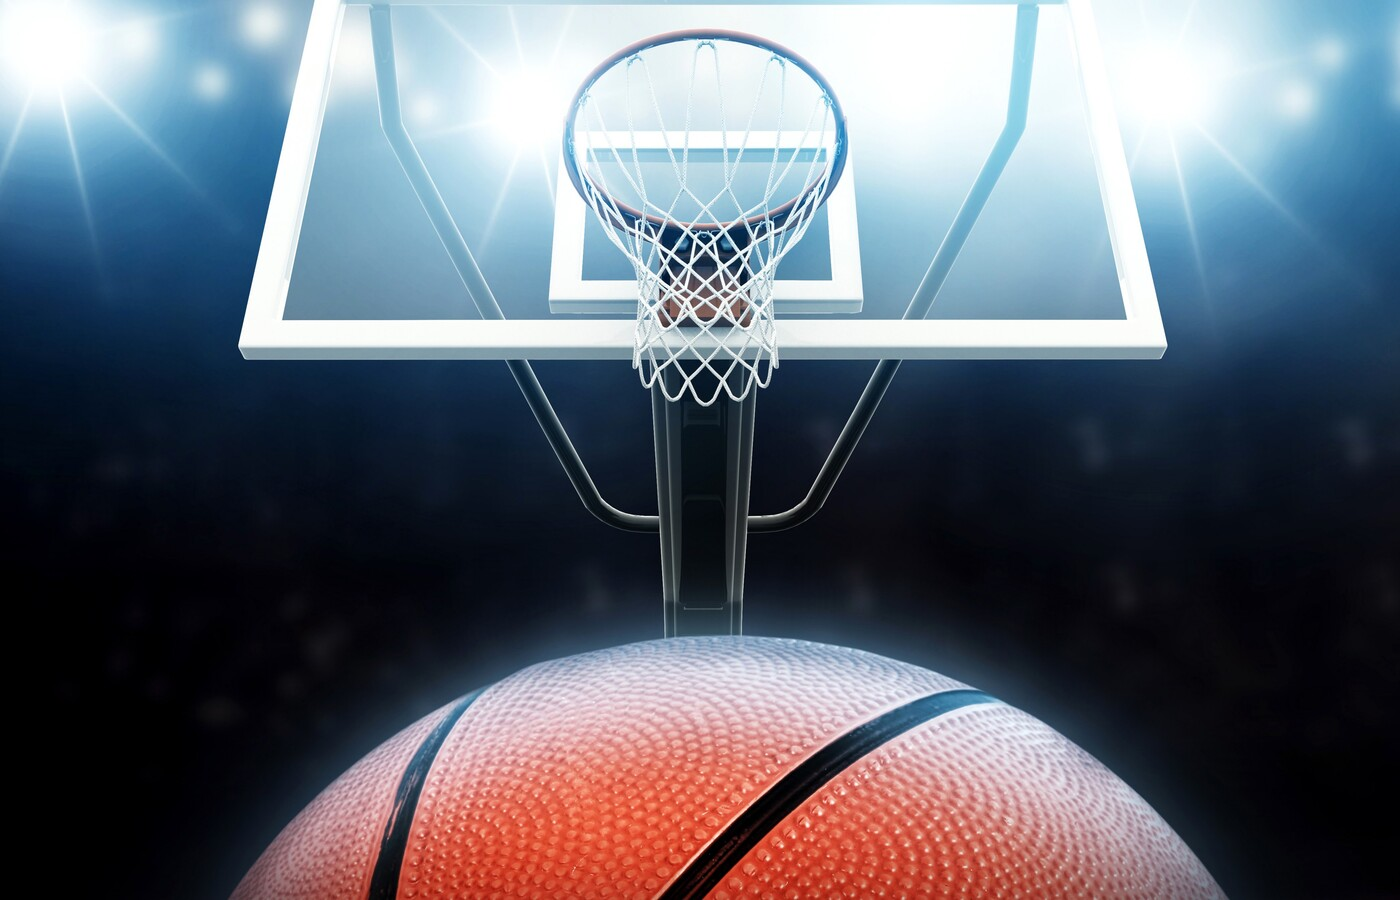 Sports Wallpaper For Android Free Download: 1400x900 Basketball 4k 1400x900 Resolution HD 4k